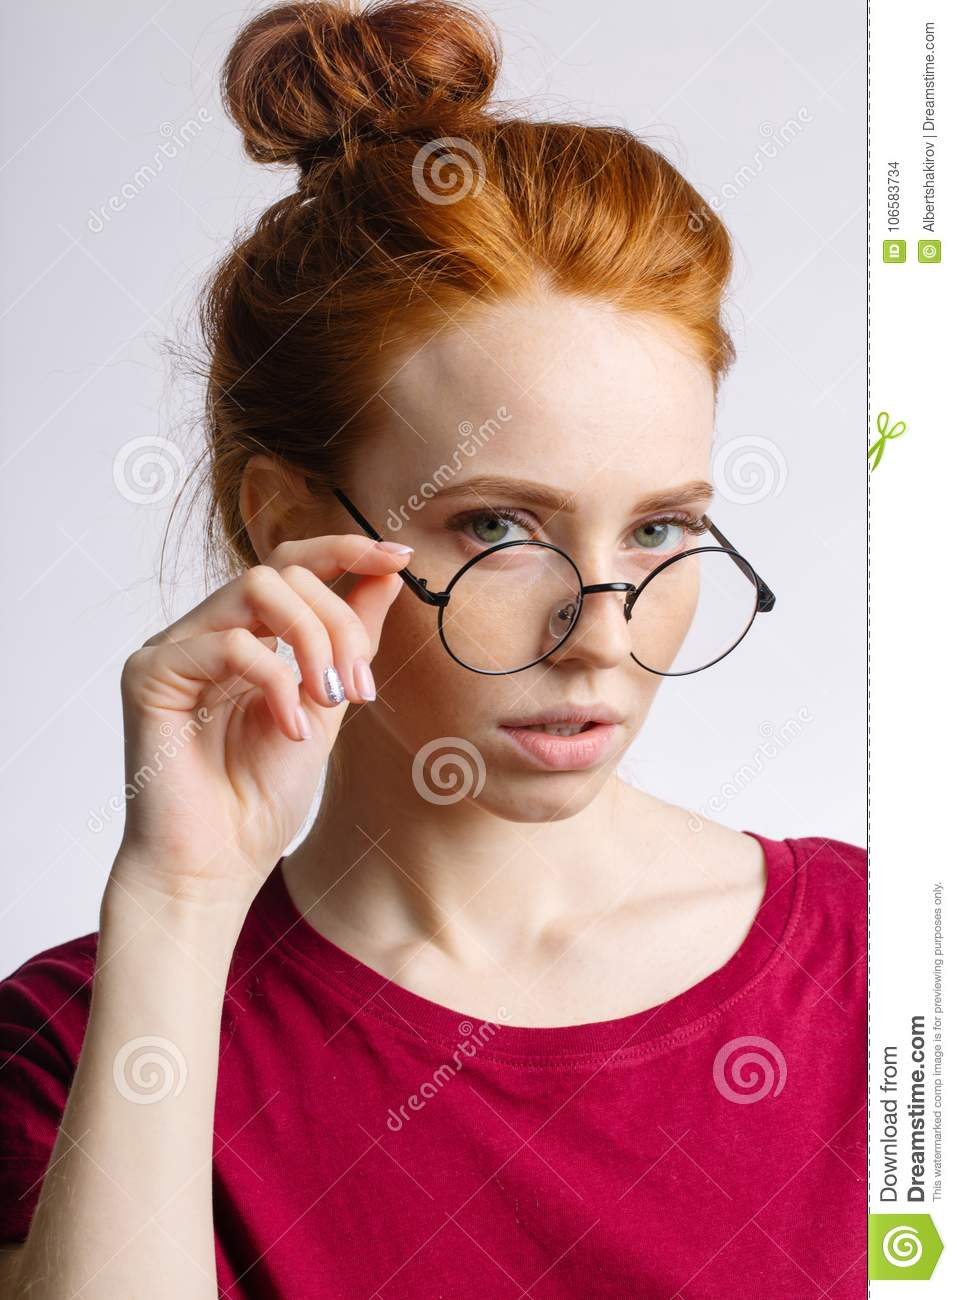 Remarkable, the adult redhead glasses